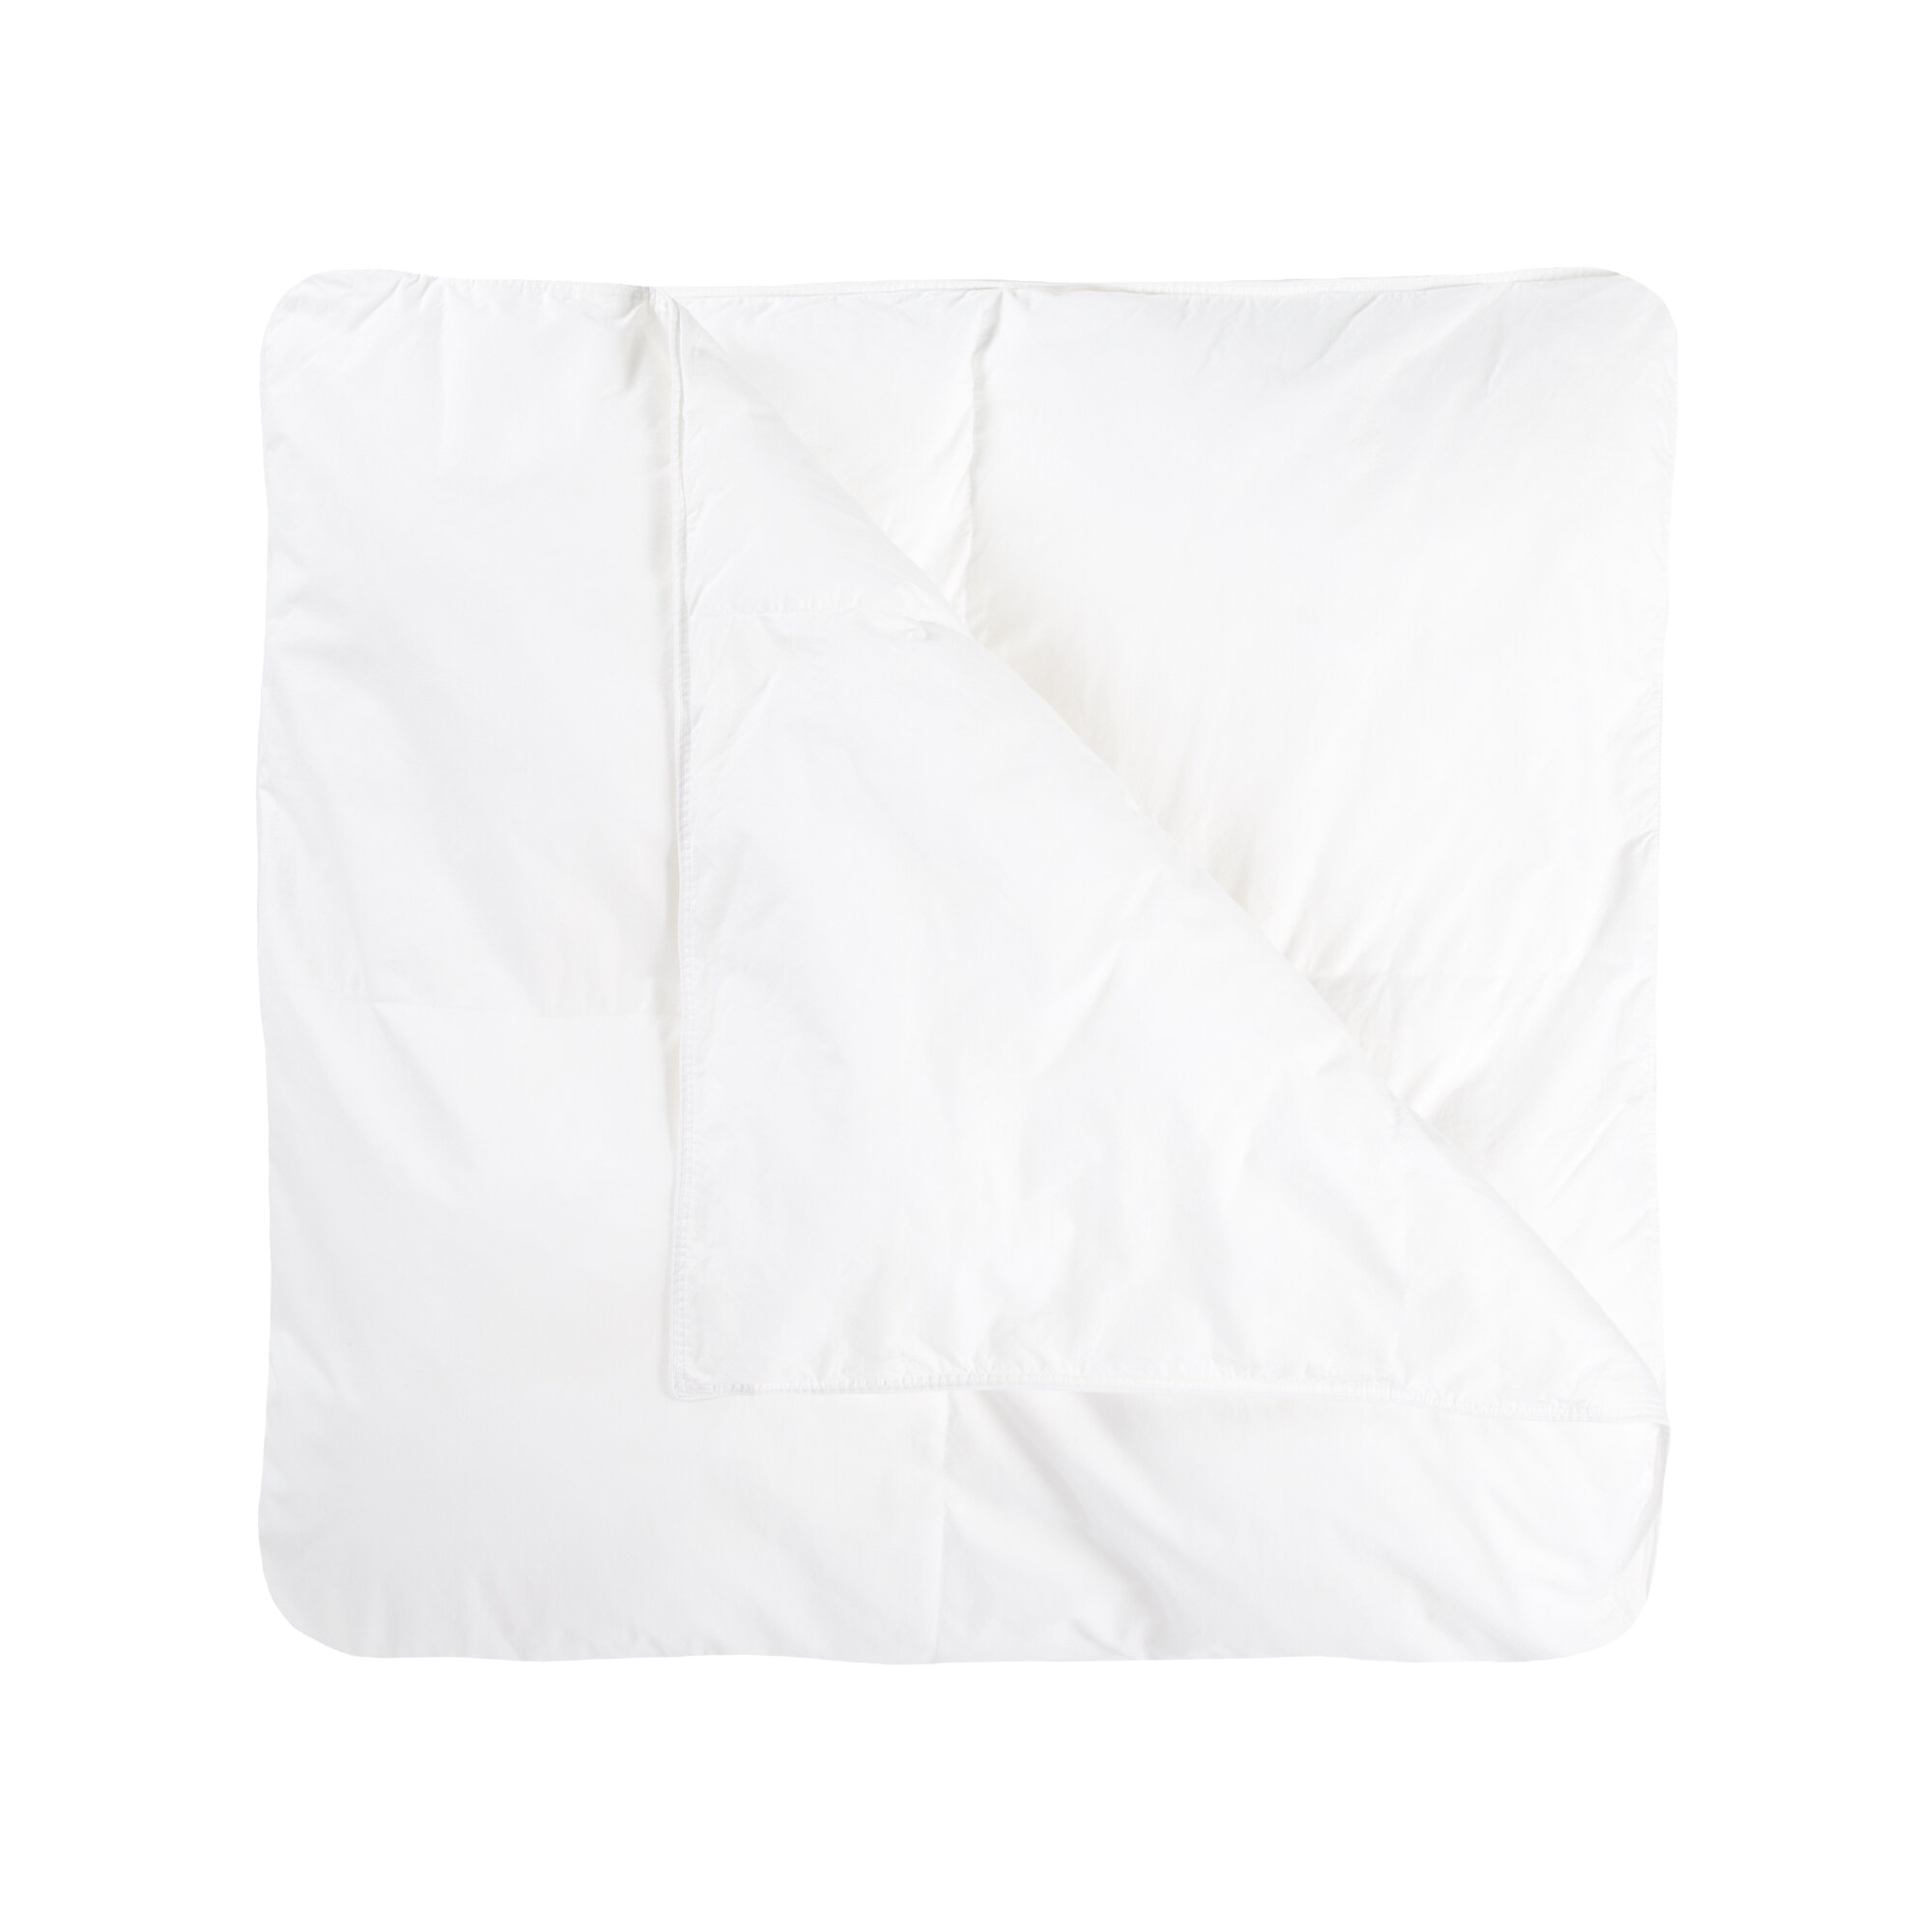 king organic jersey sheets duvet size for target bedroom queen insert beautiful cotton ki comforters and blush decoration white green ideas ikea covers cover